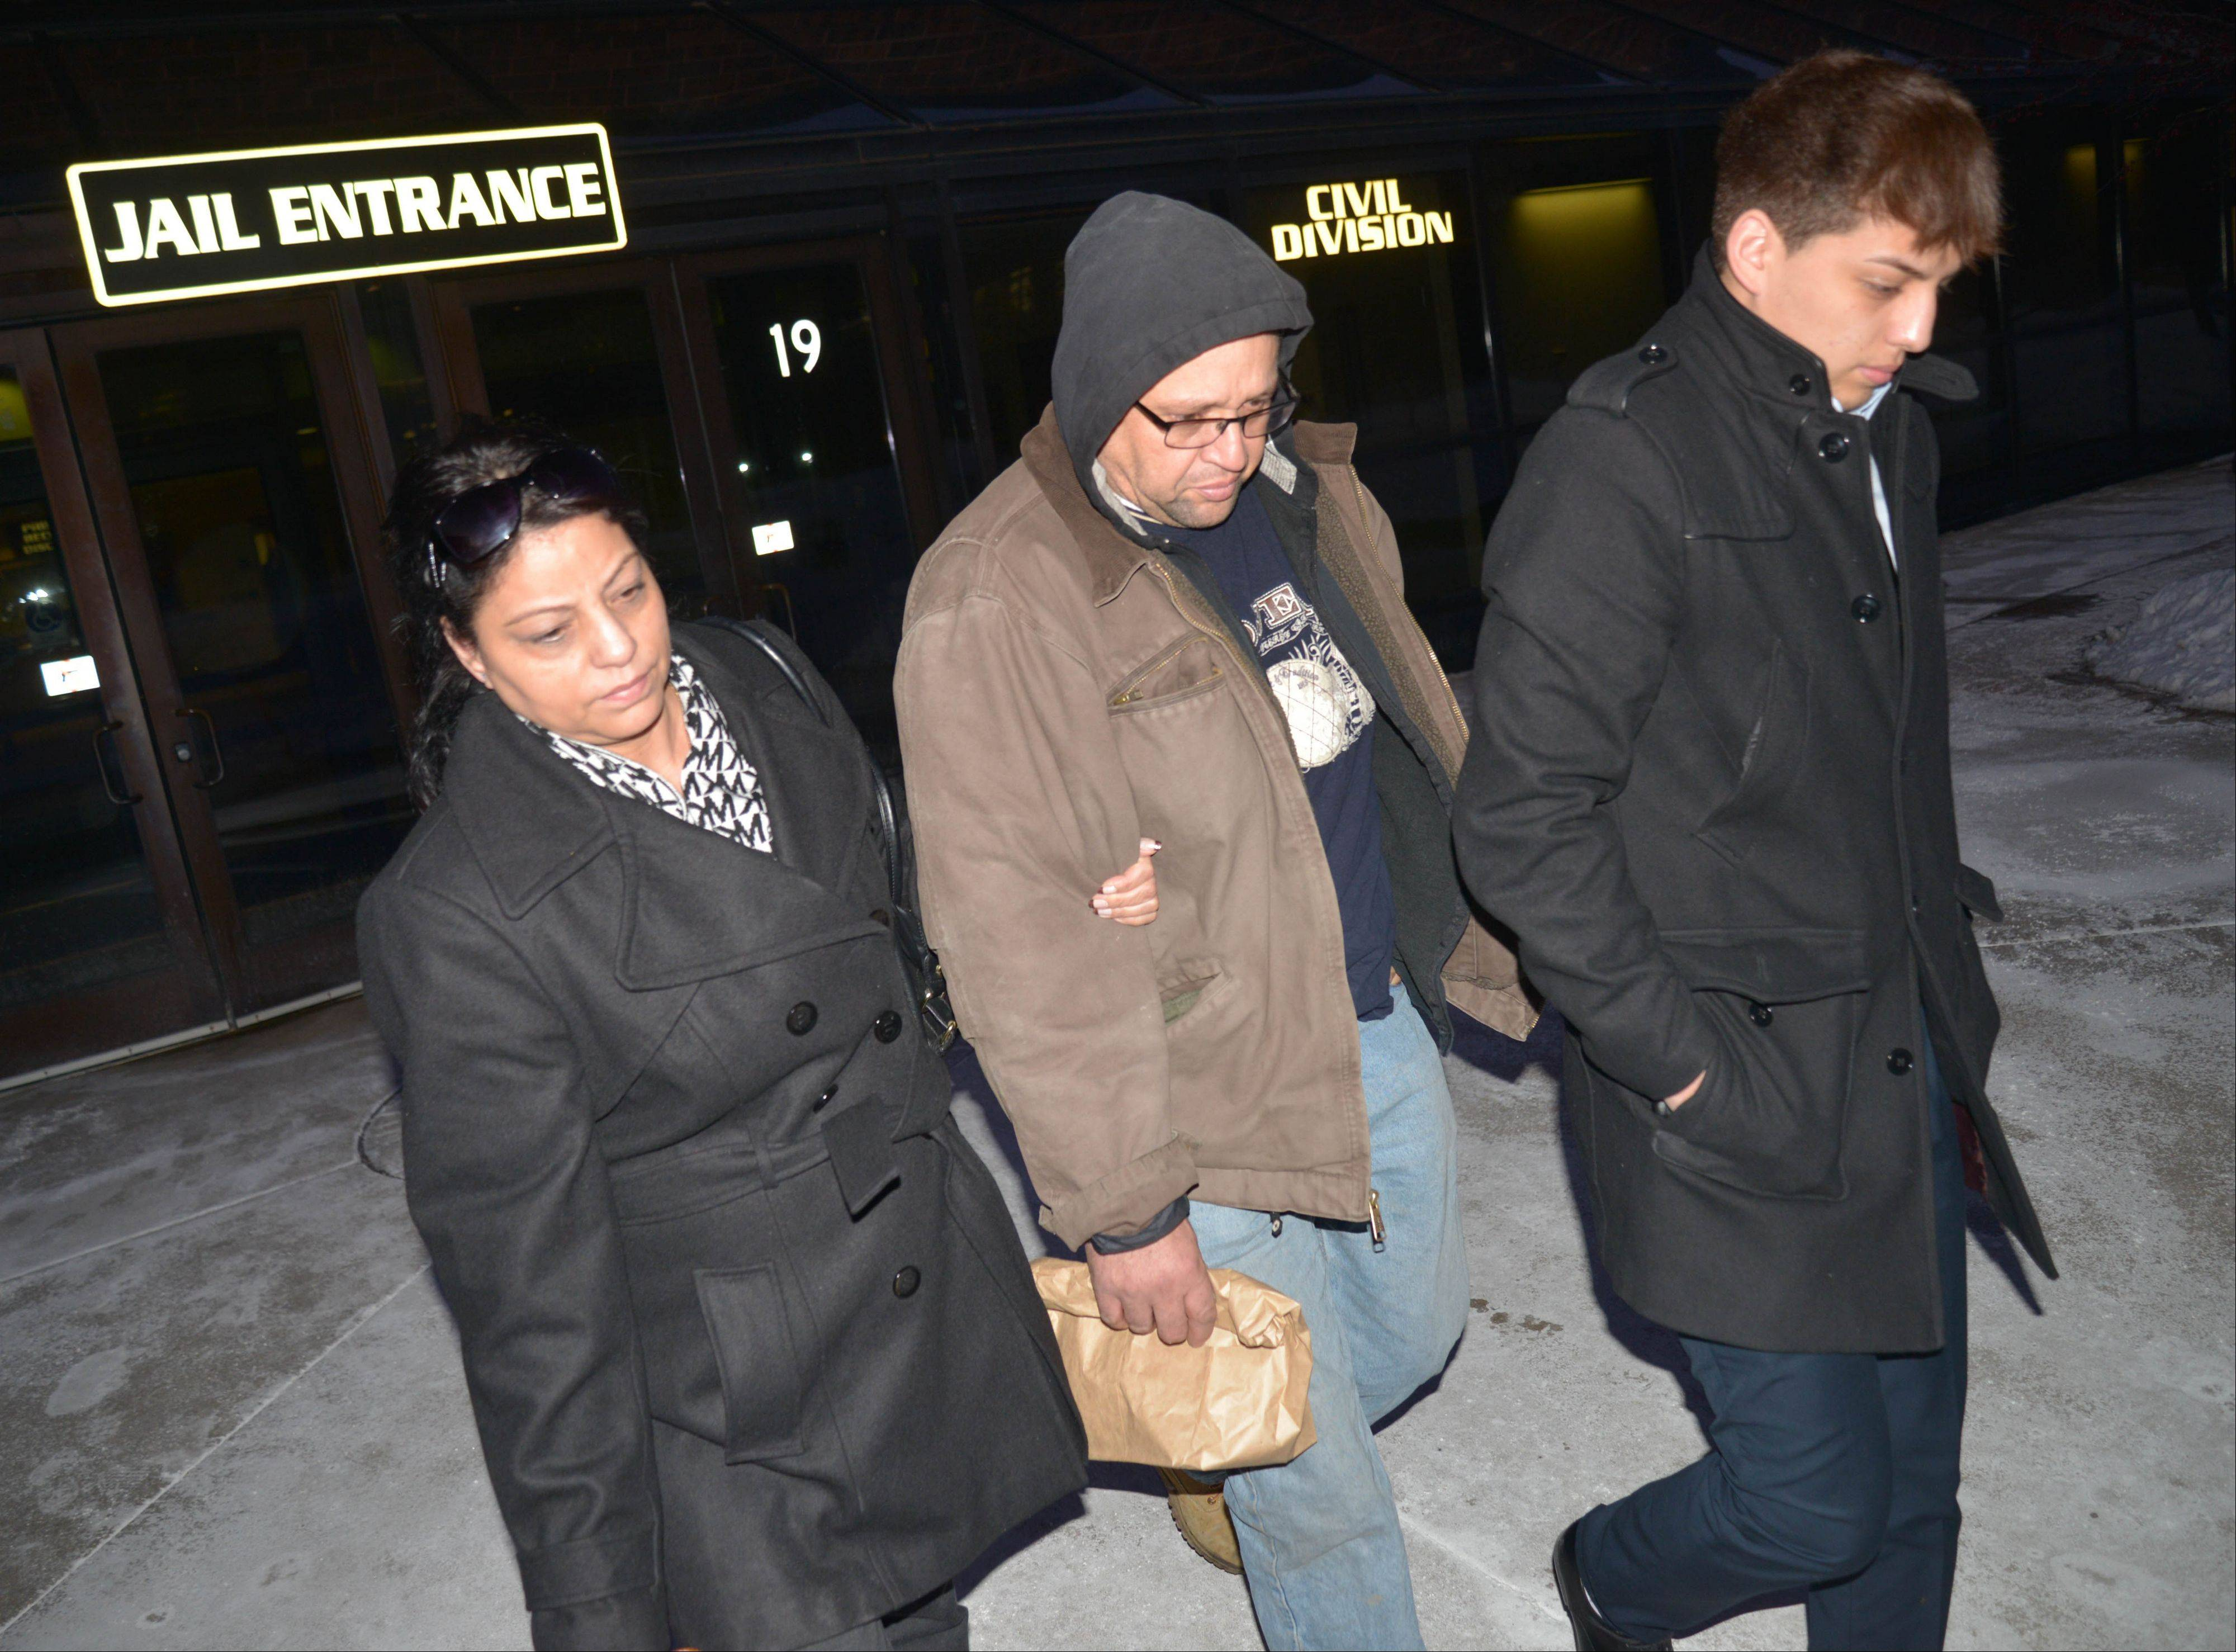 Renato V. Velasquez, center, was released Wednesday evening from the DuPage County jail where he had been held after a fatal accident that killed a tollway worker Monday night along I-88 near Aurora.